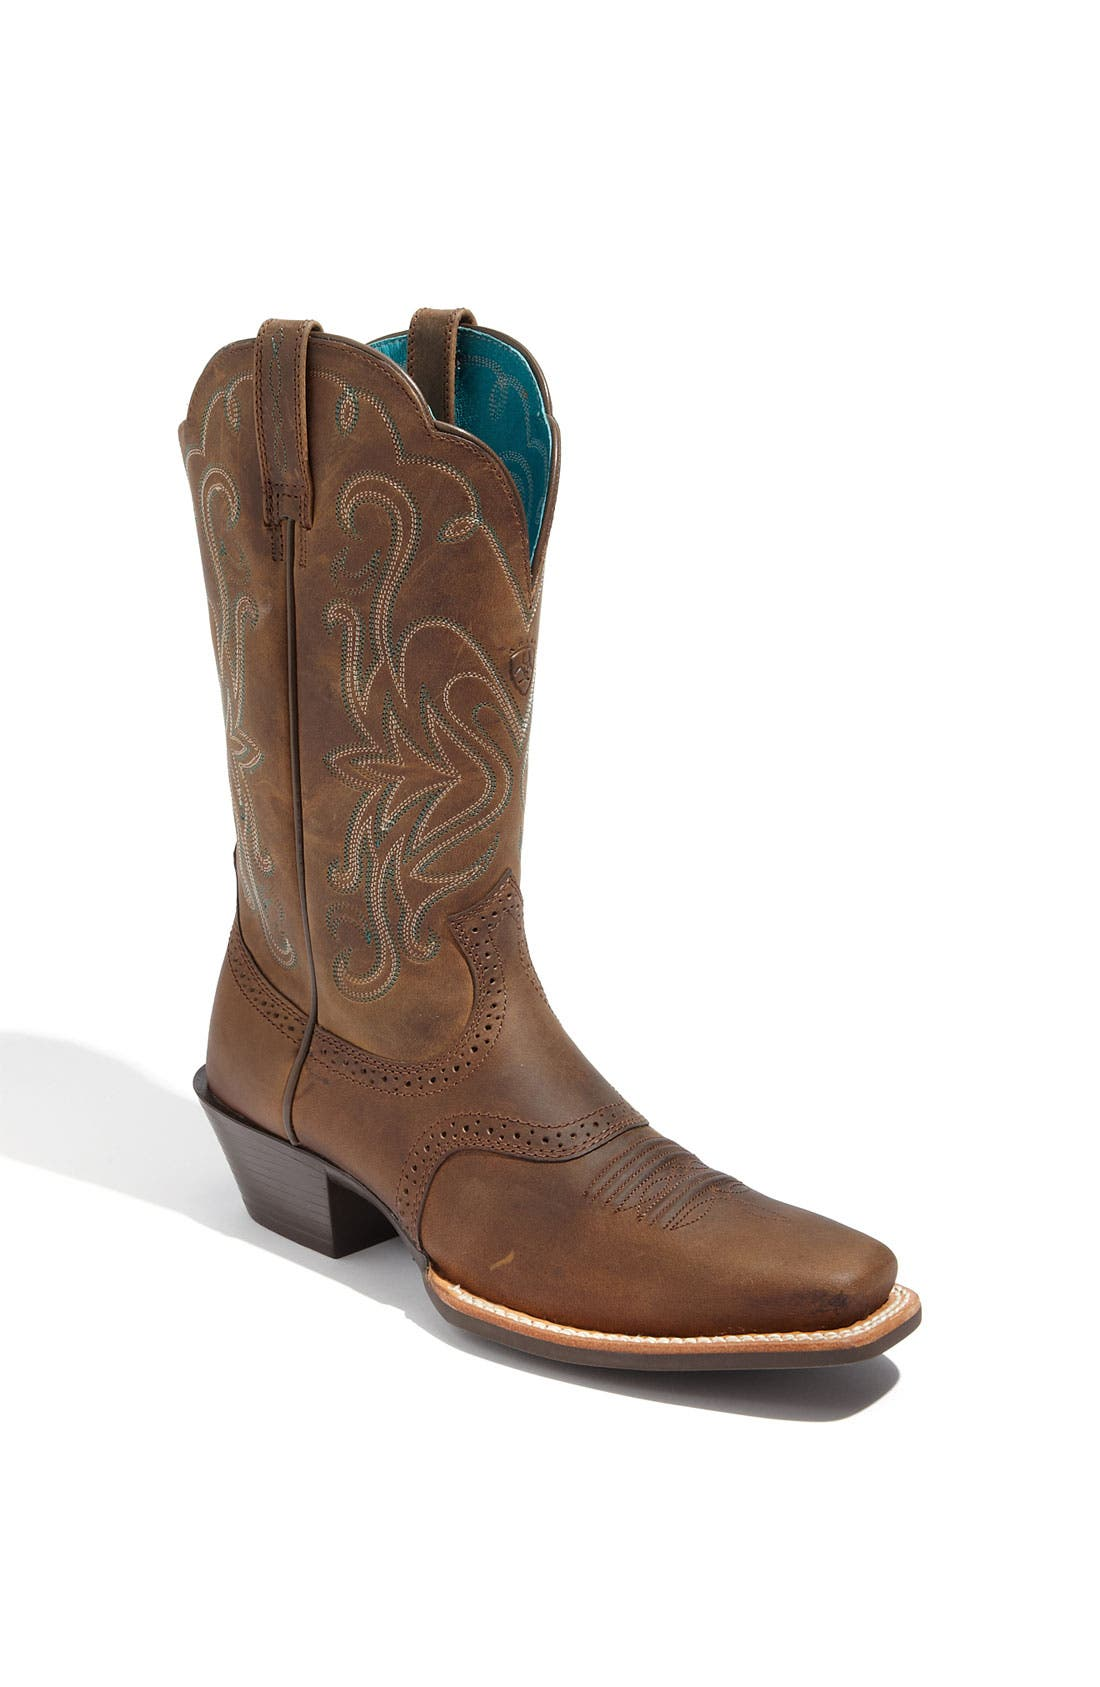 Alternate Image 1 Selected - Ariat 'Legend' Boot